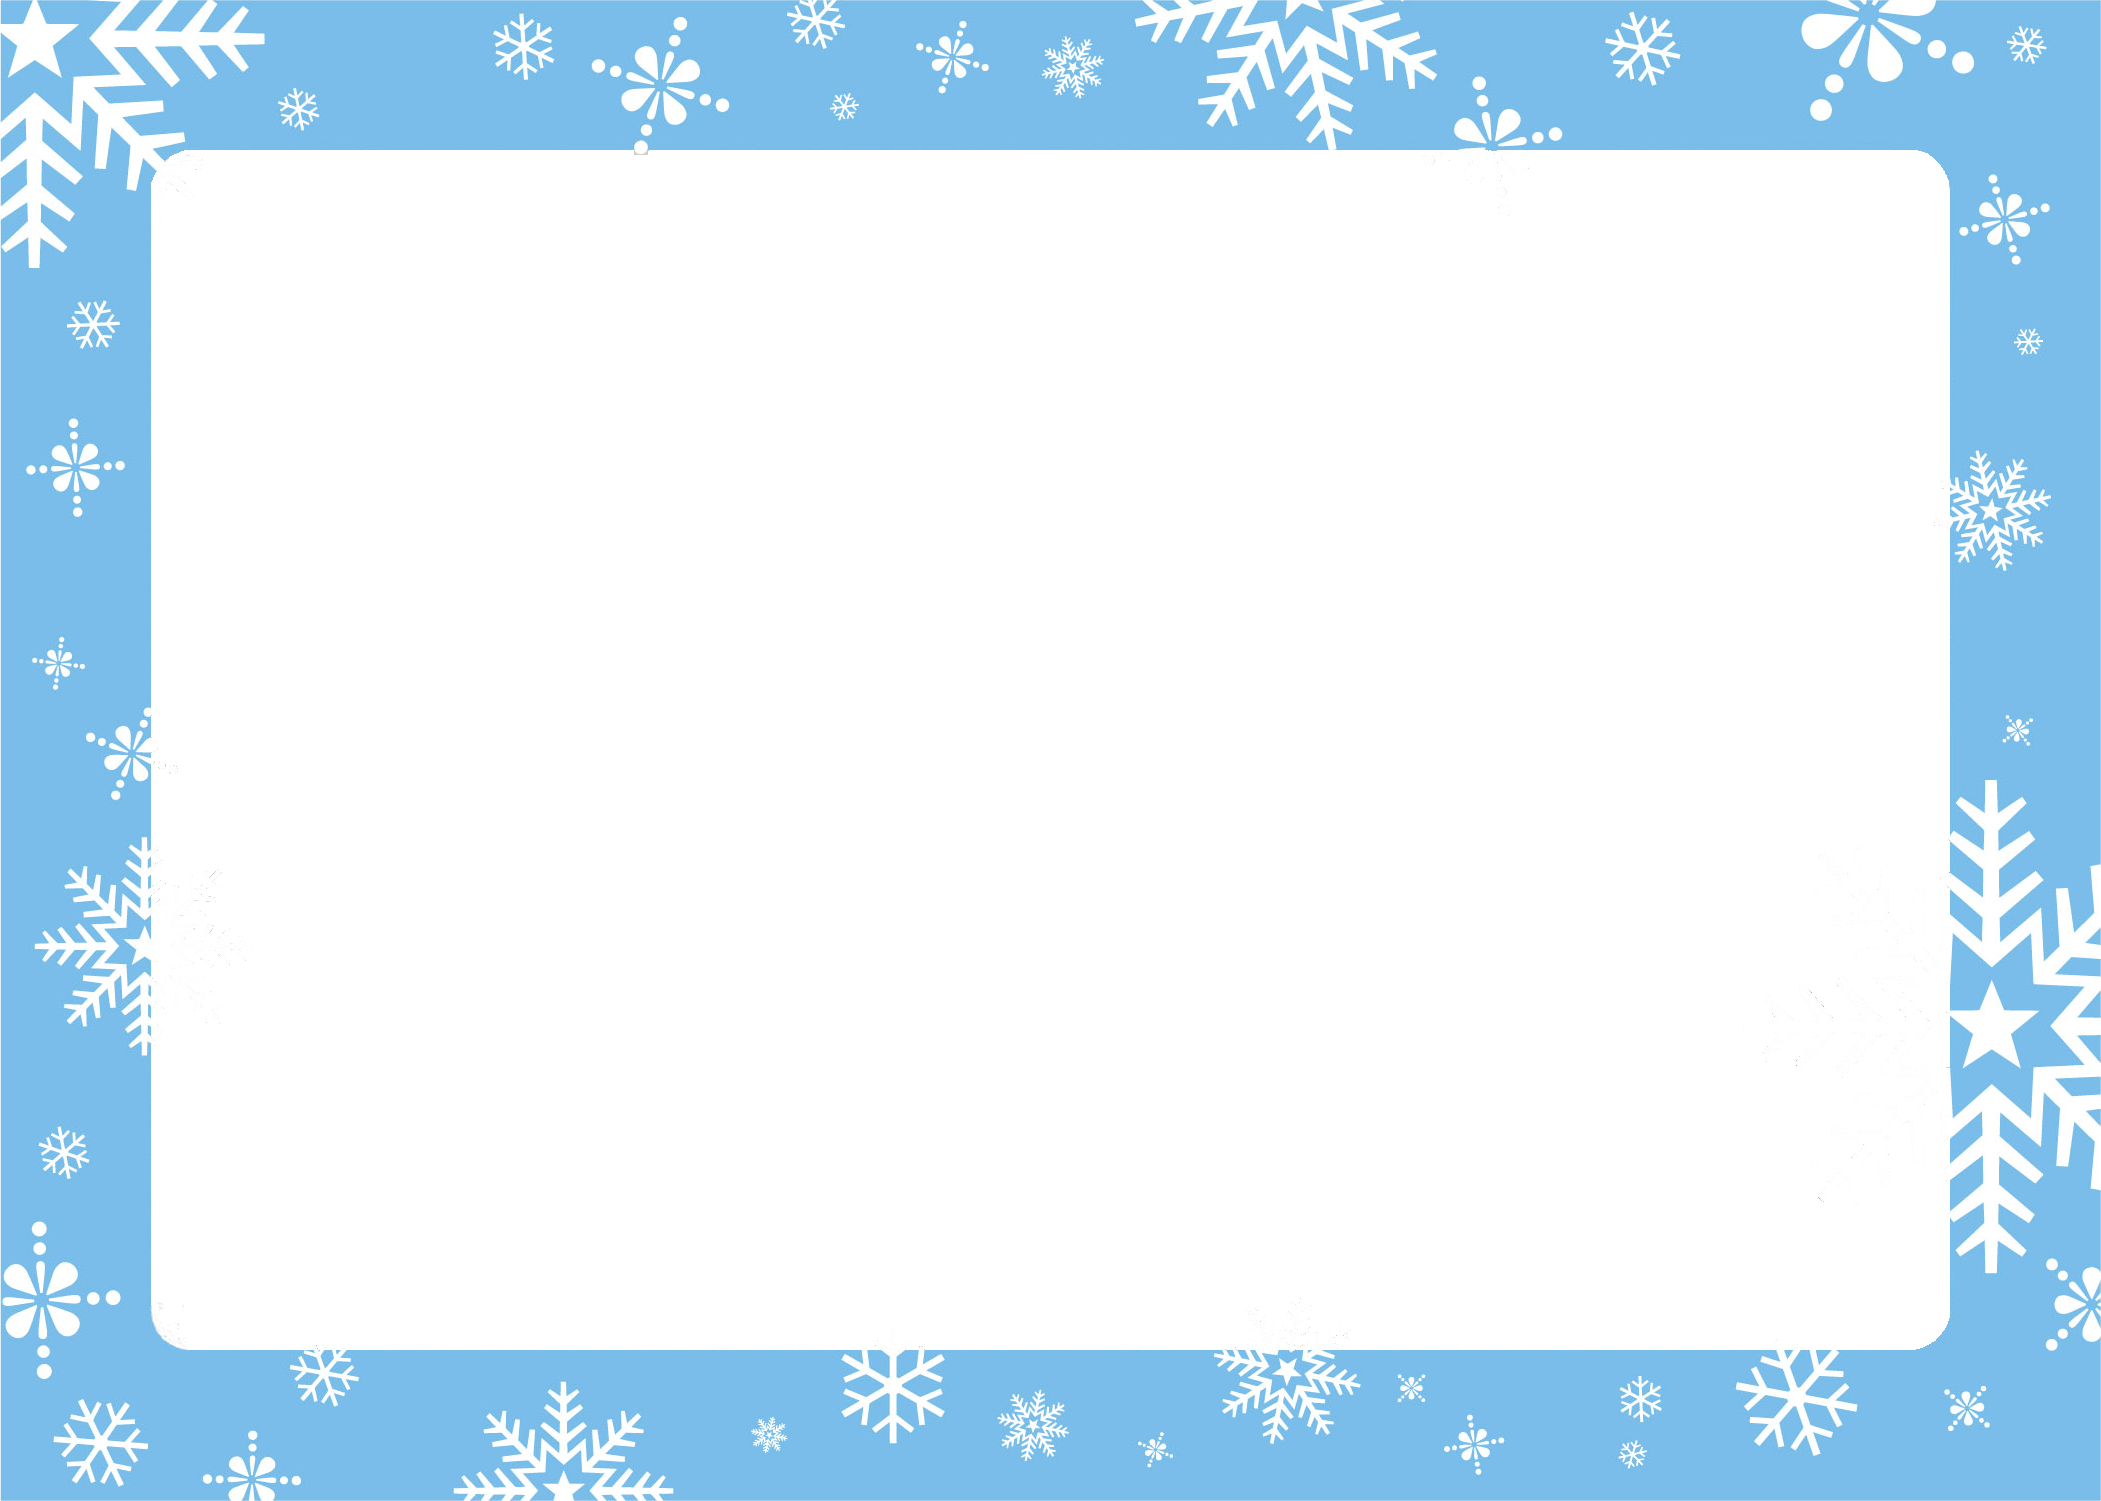 Snowflake christmas clipart border png download Free Border Template. certificate artwork certificate background ... png download